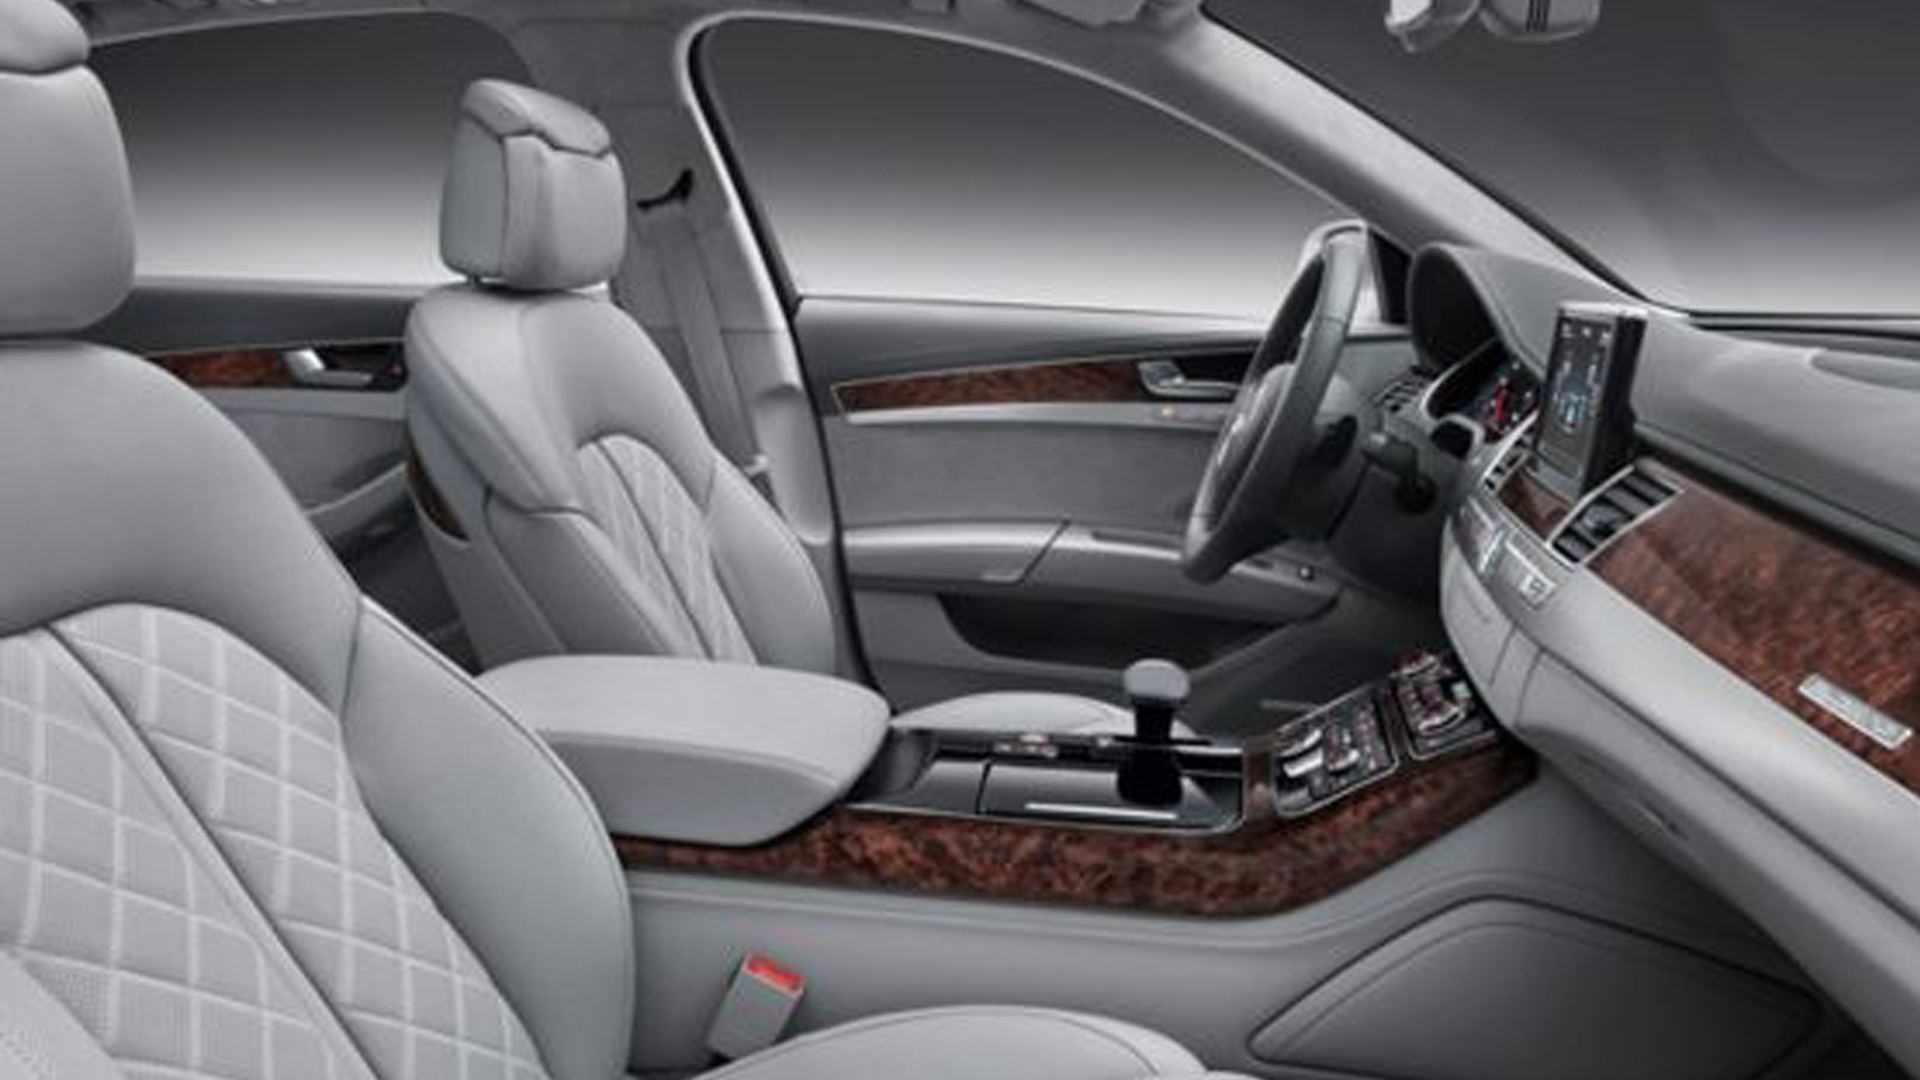 2013 Audi A8 (View 4 of 6)